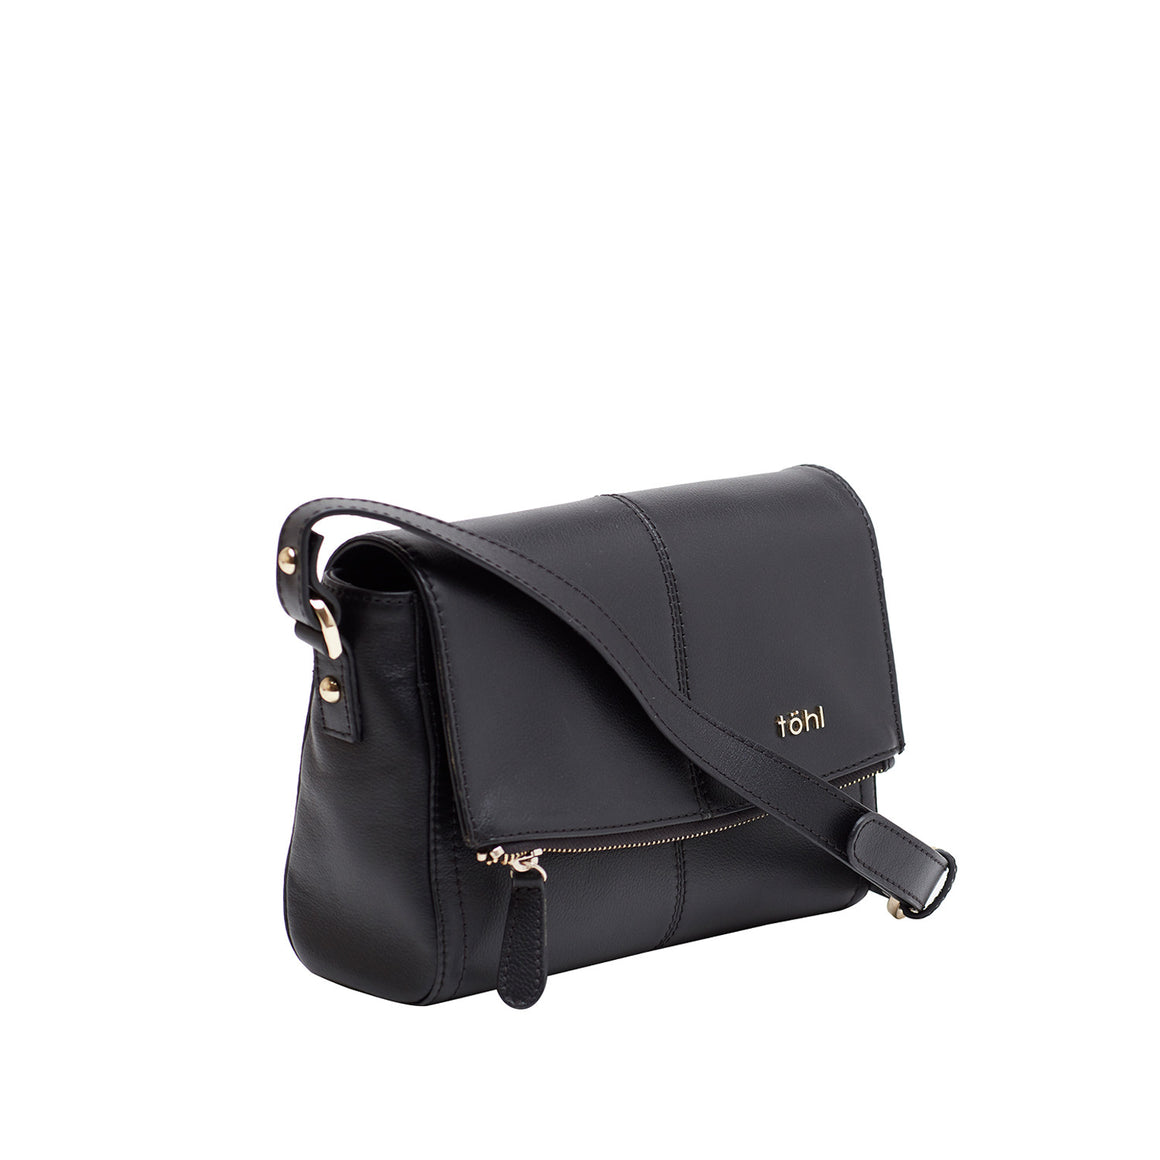 SG 0001 - TOHL MADISON WOMEN'S DAY BAG - CHARCOAL BLACK